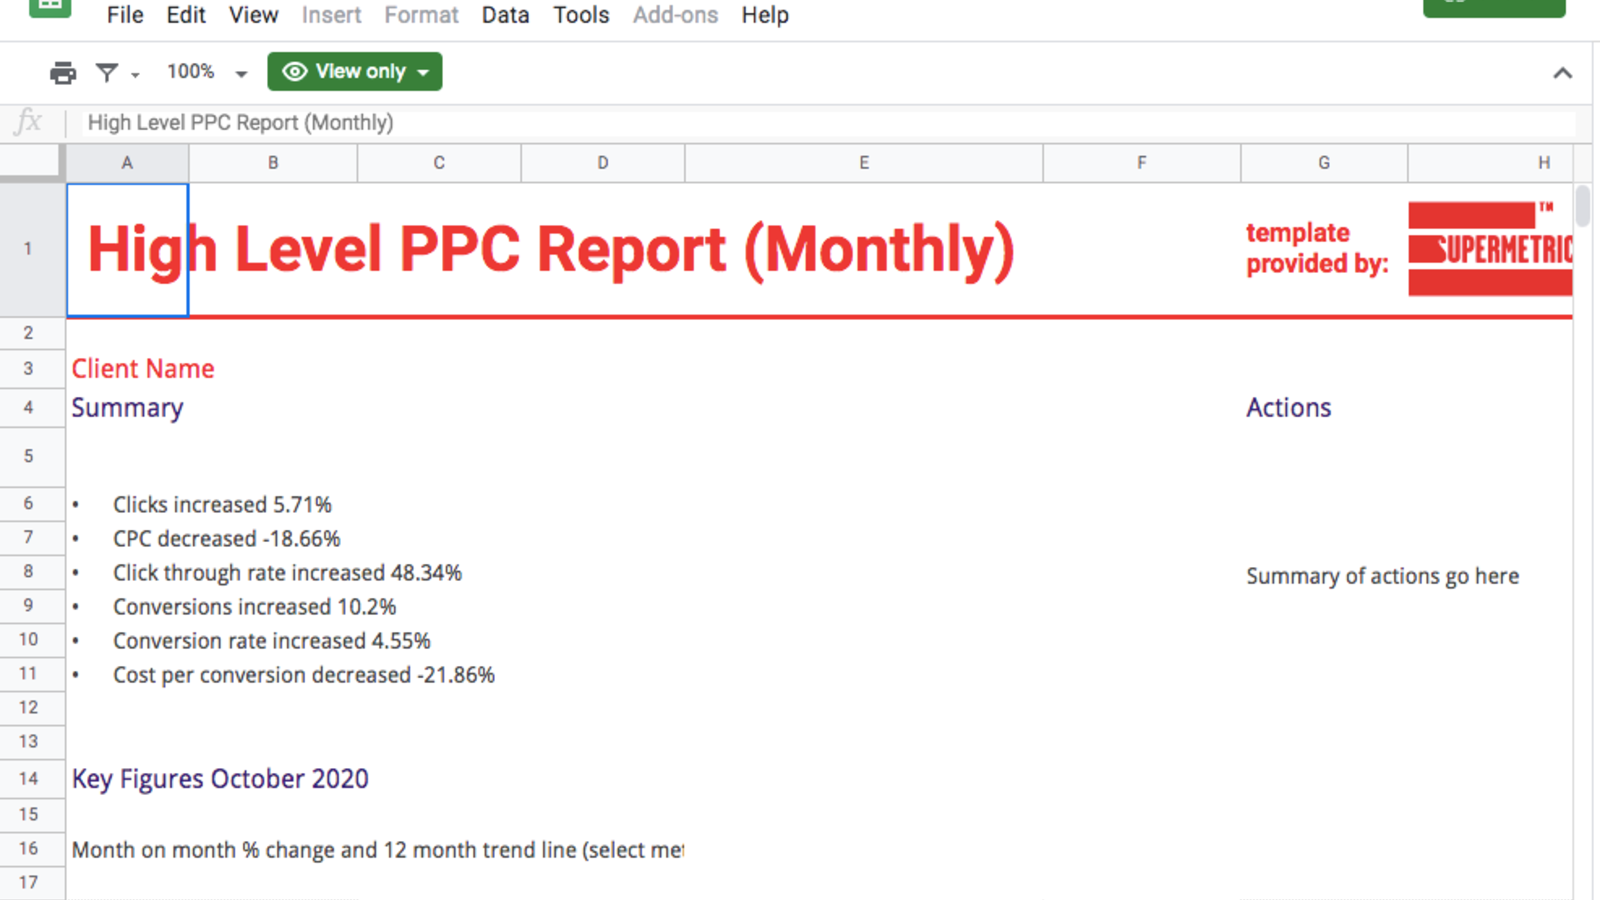 High Level PPC Report (Monthly)